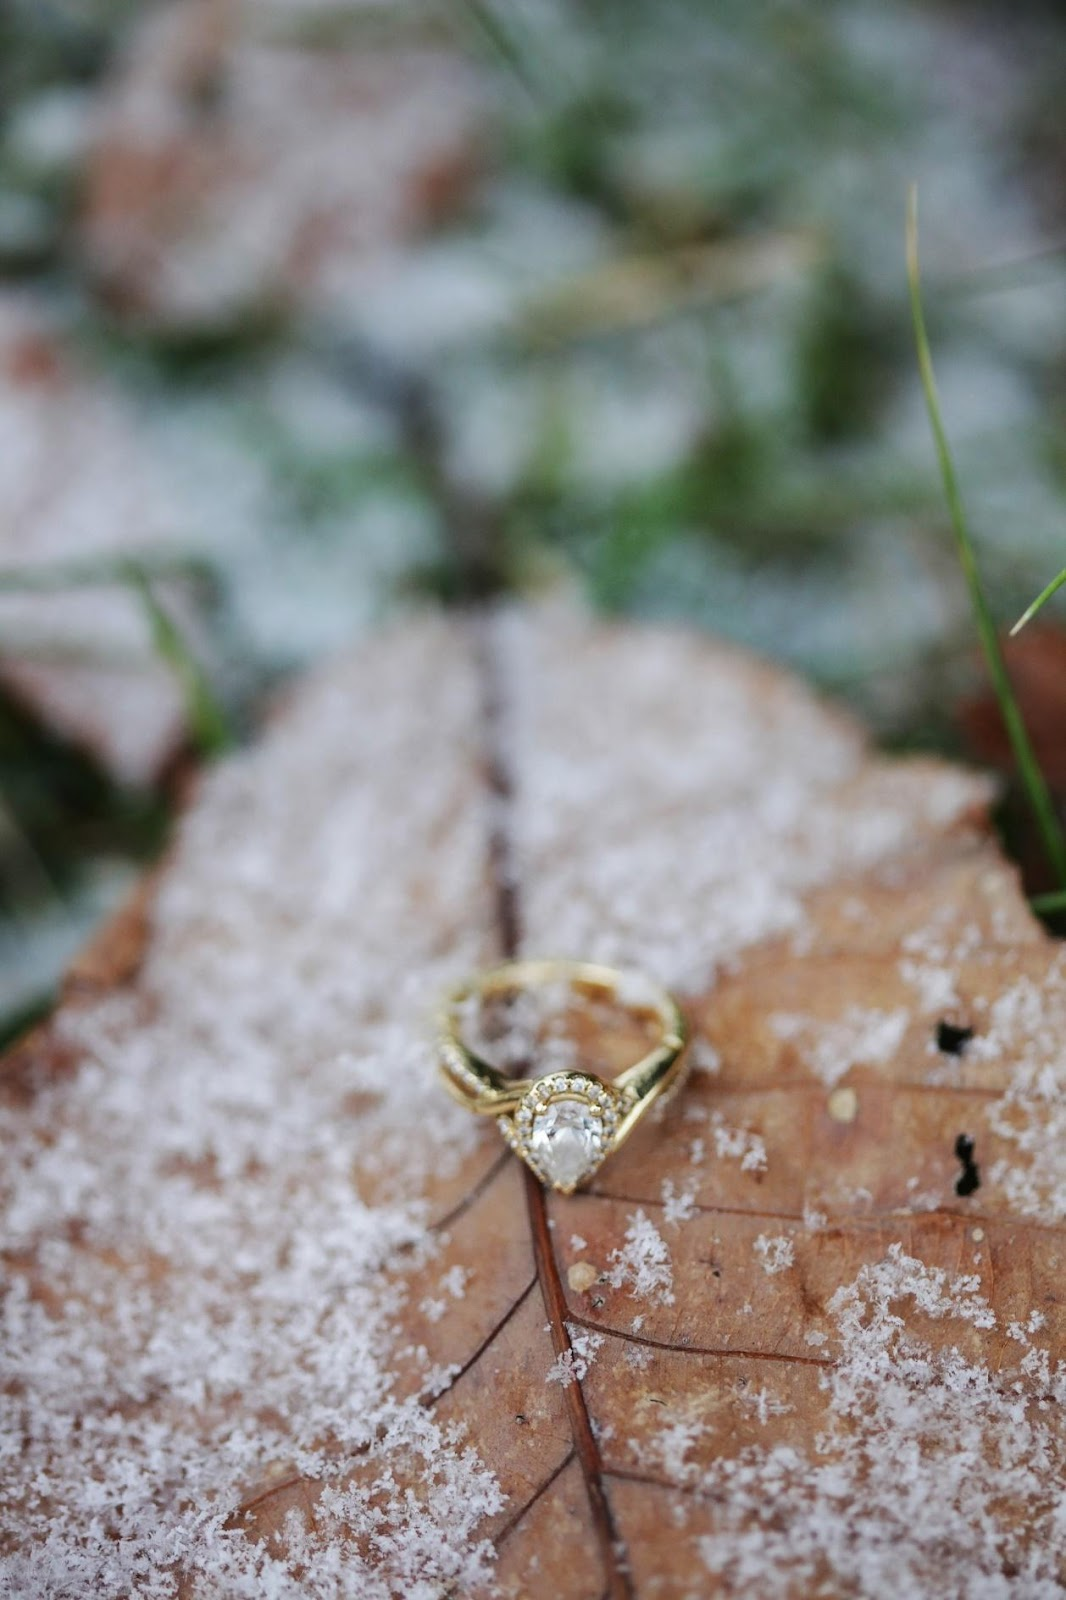 C:\Users\DSG - Shaine\Downloads\depth-of-field-engagement-ring-frost-776372.jpg